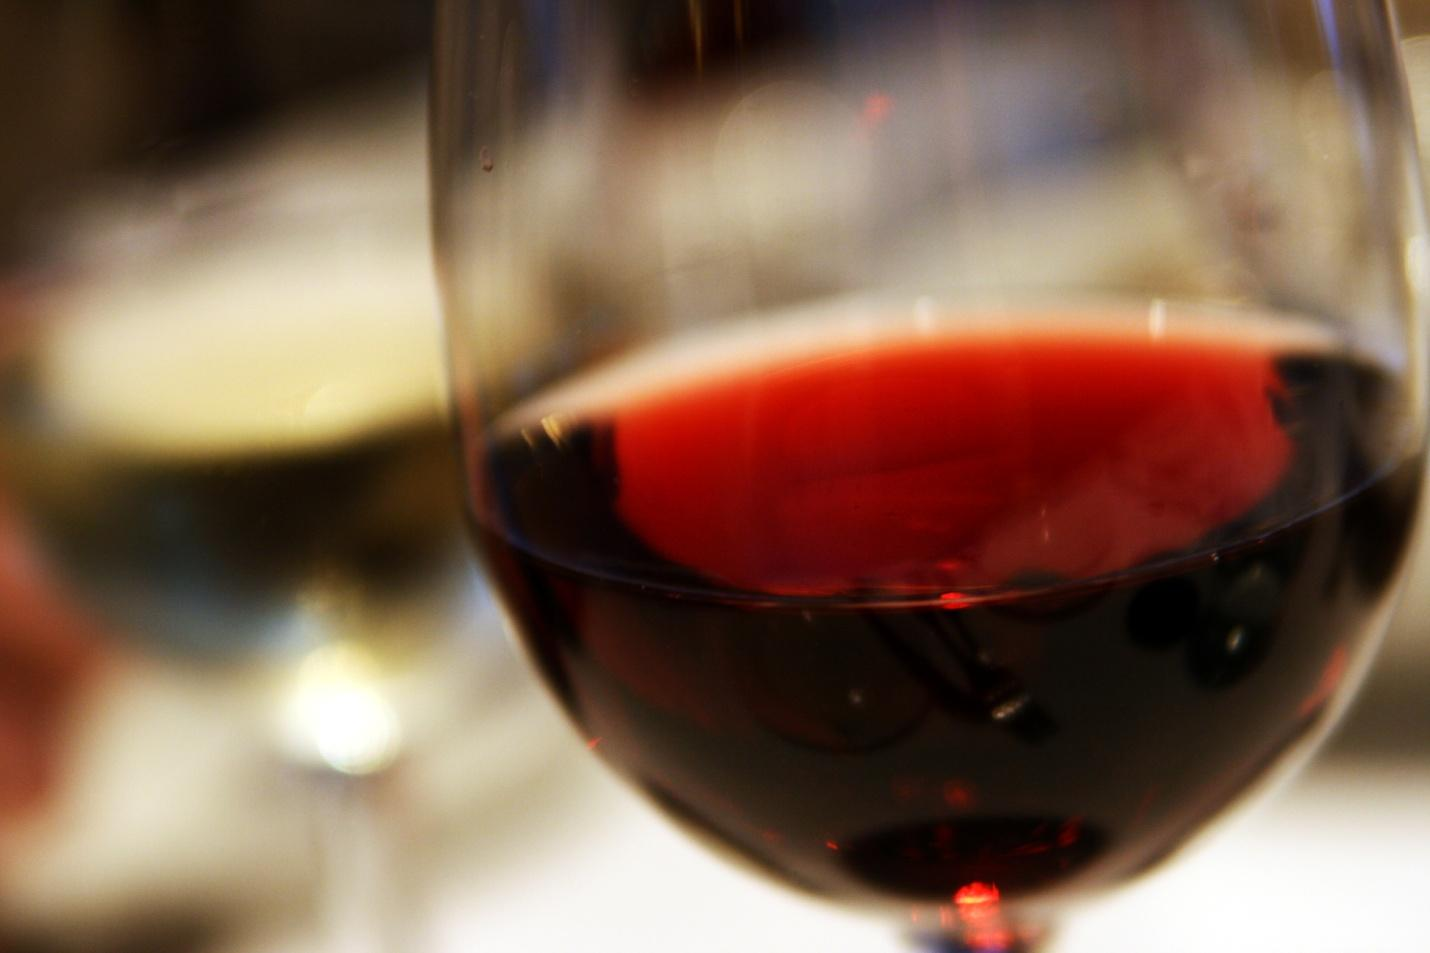 a picture of a glass of deep red wine